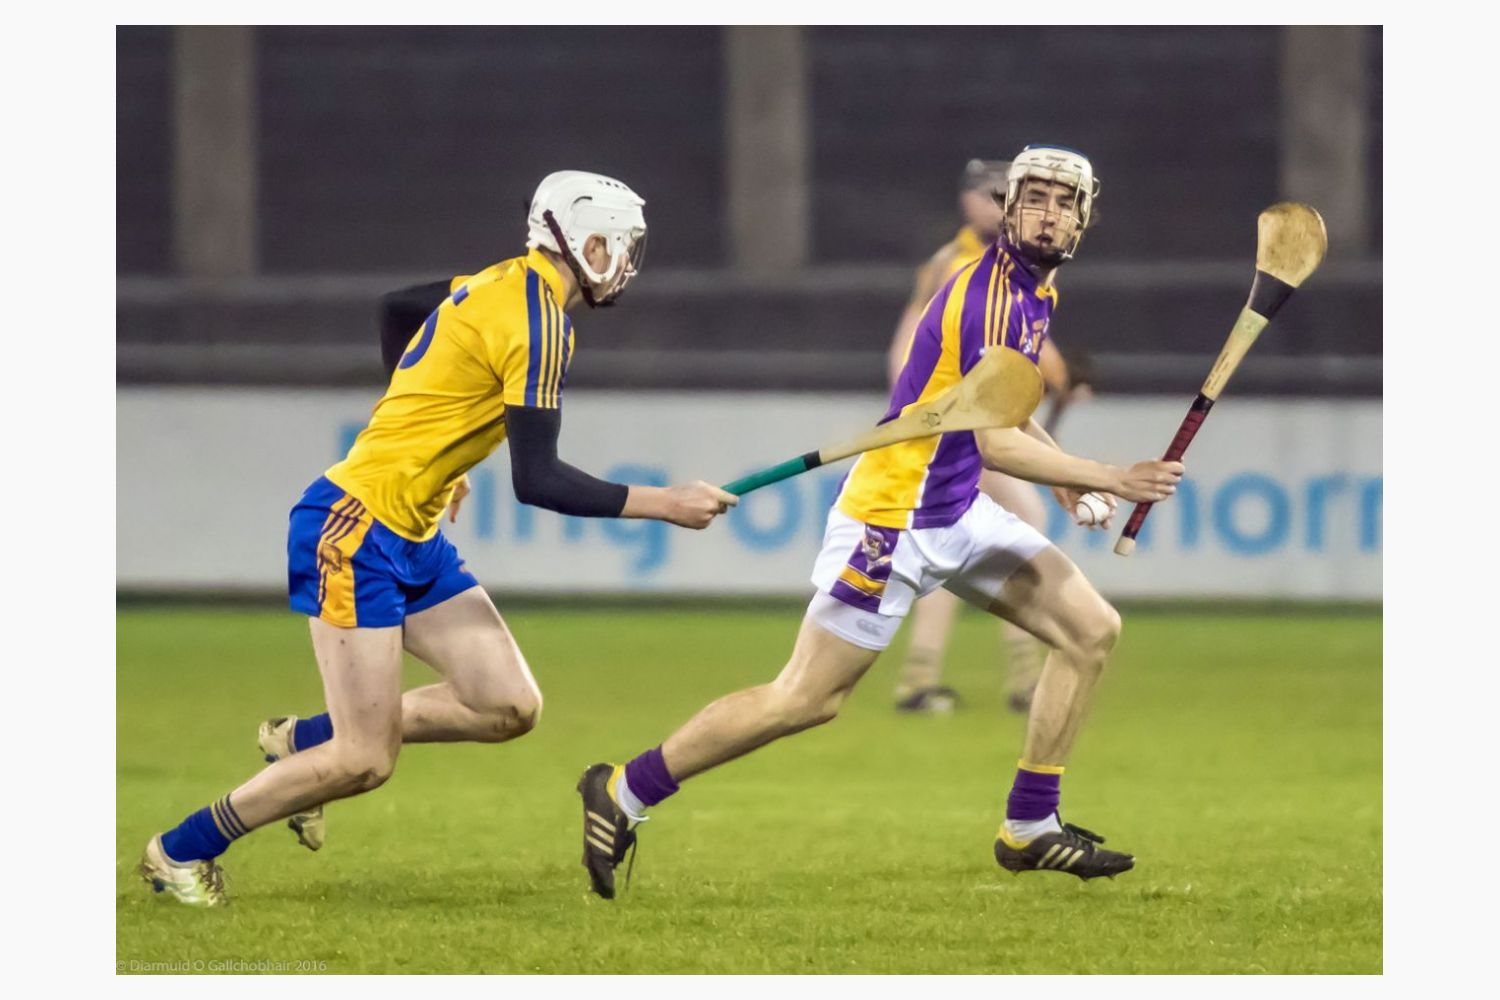 U21 Final - Crokes v Na Fianna 11 Dec @4:30pm Parnell Pk